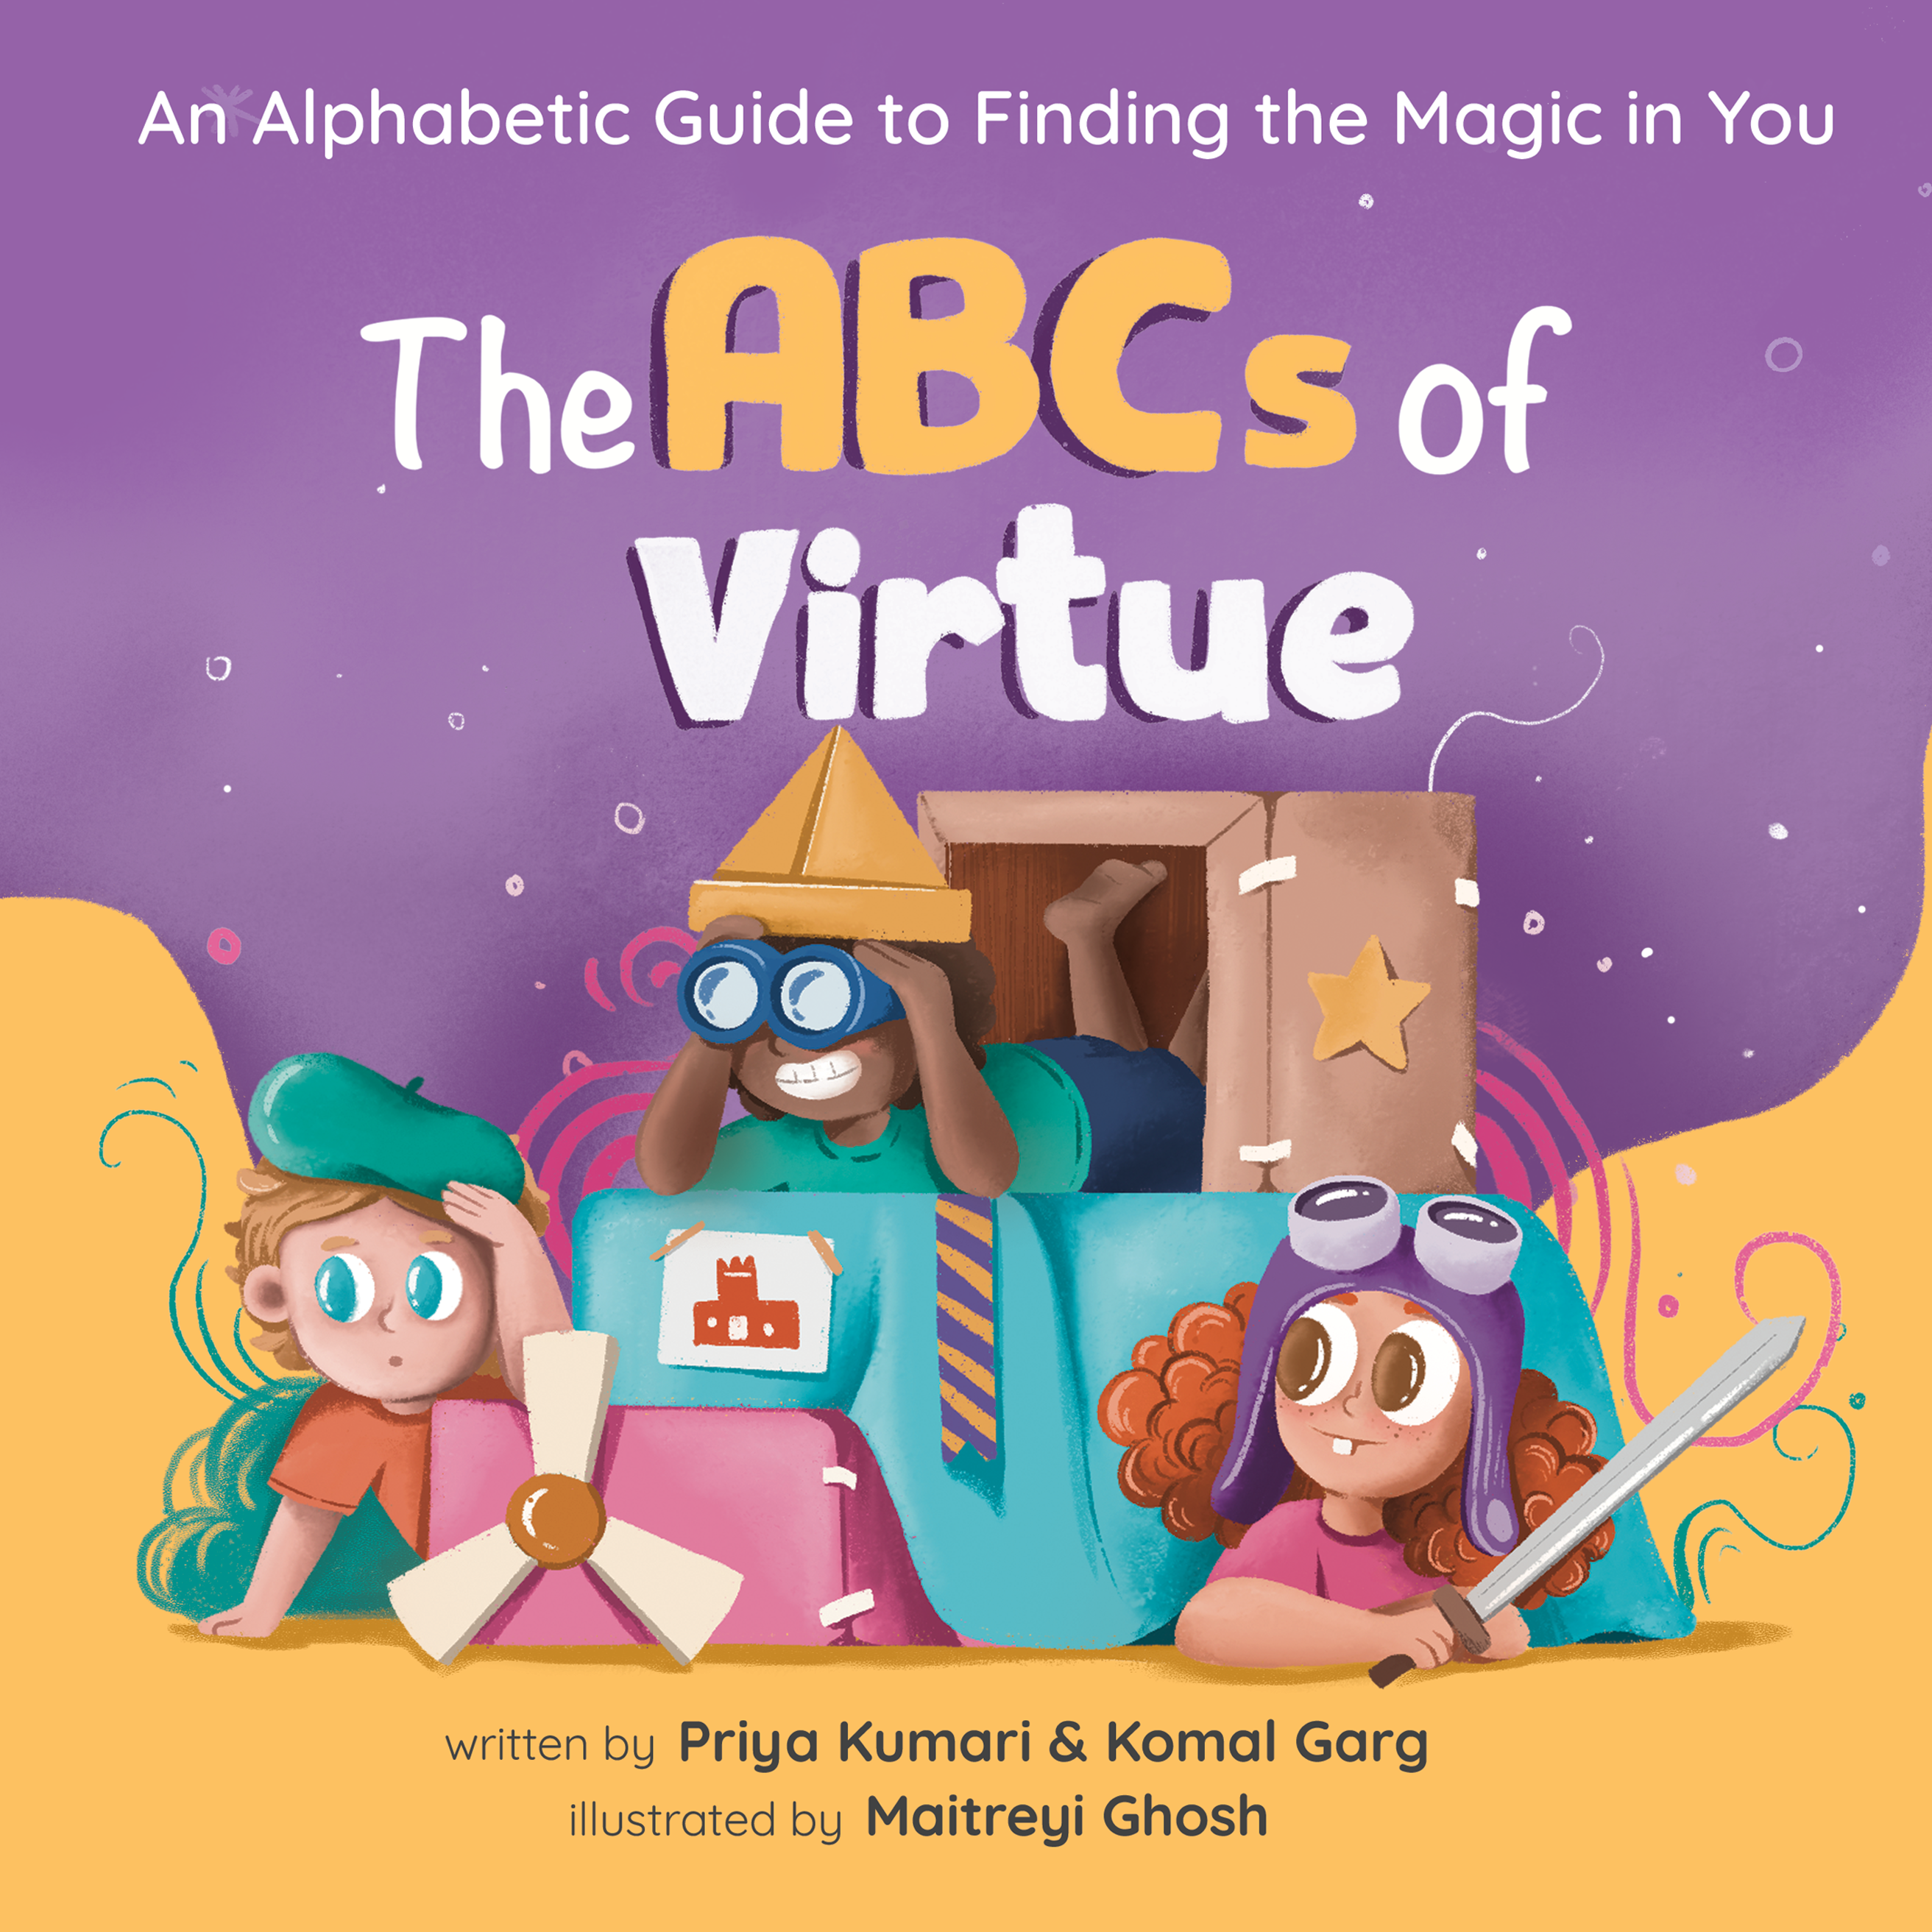 Author Priya Kumari's Latest Children's Book, 'The ABCs of Virtue', Is Earning Acclaim & Positive Reviews